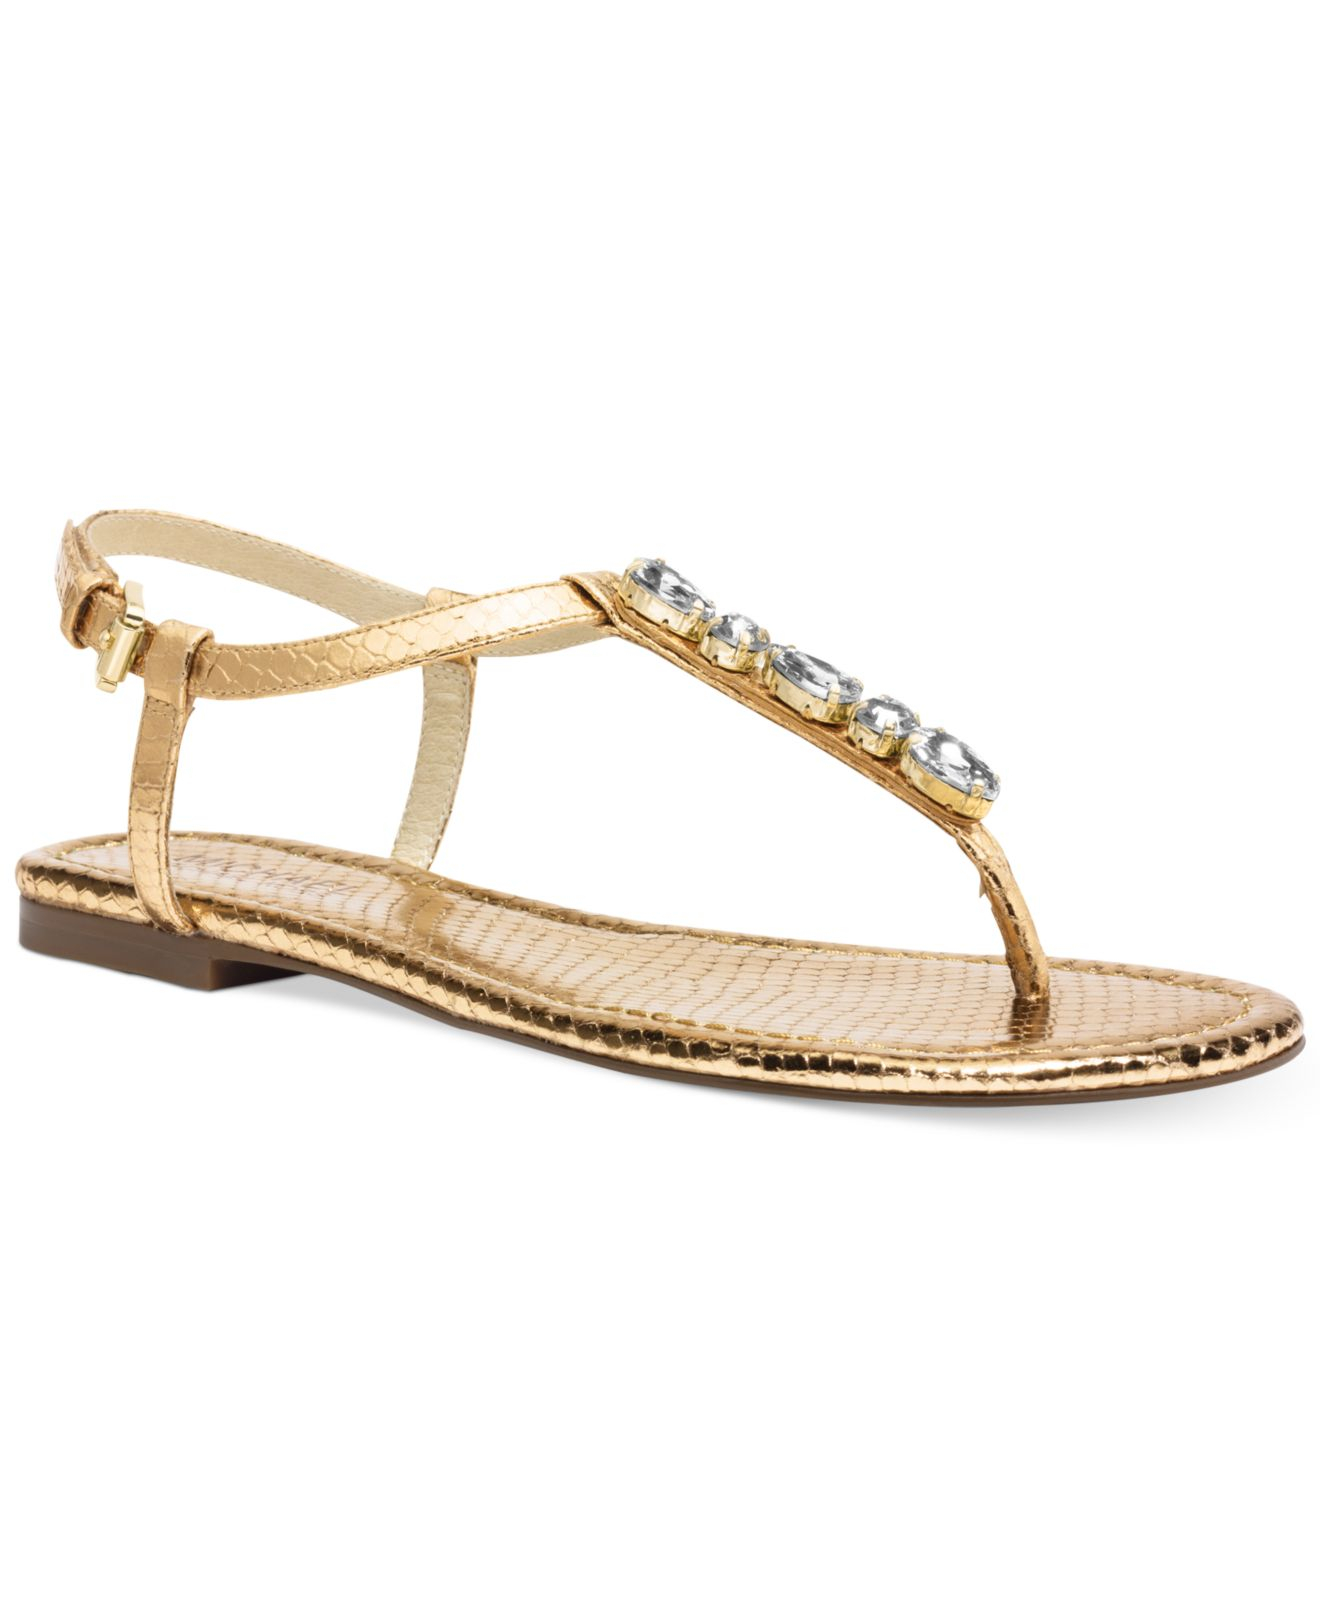 237059e52092b0 Lyst - Michael Kors Michael Jayden Jeweled Flat Thong Sandals in ...